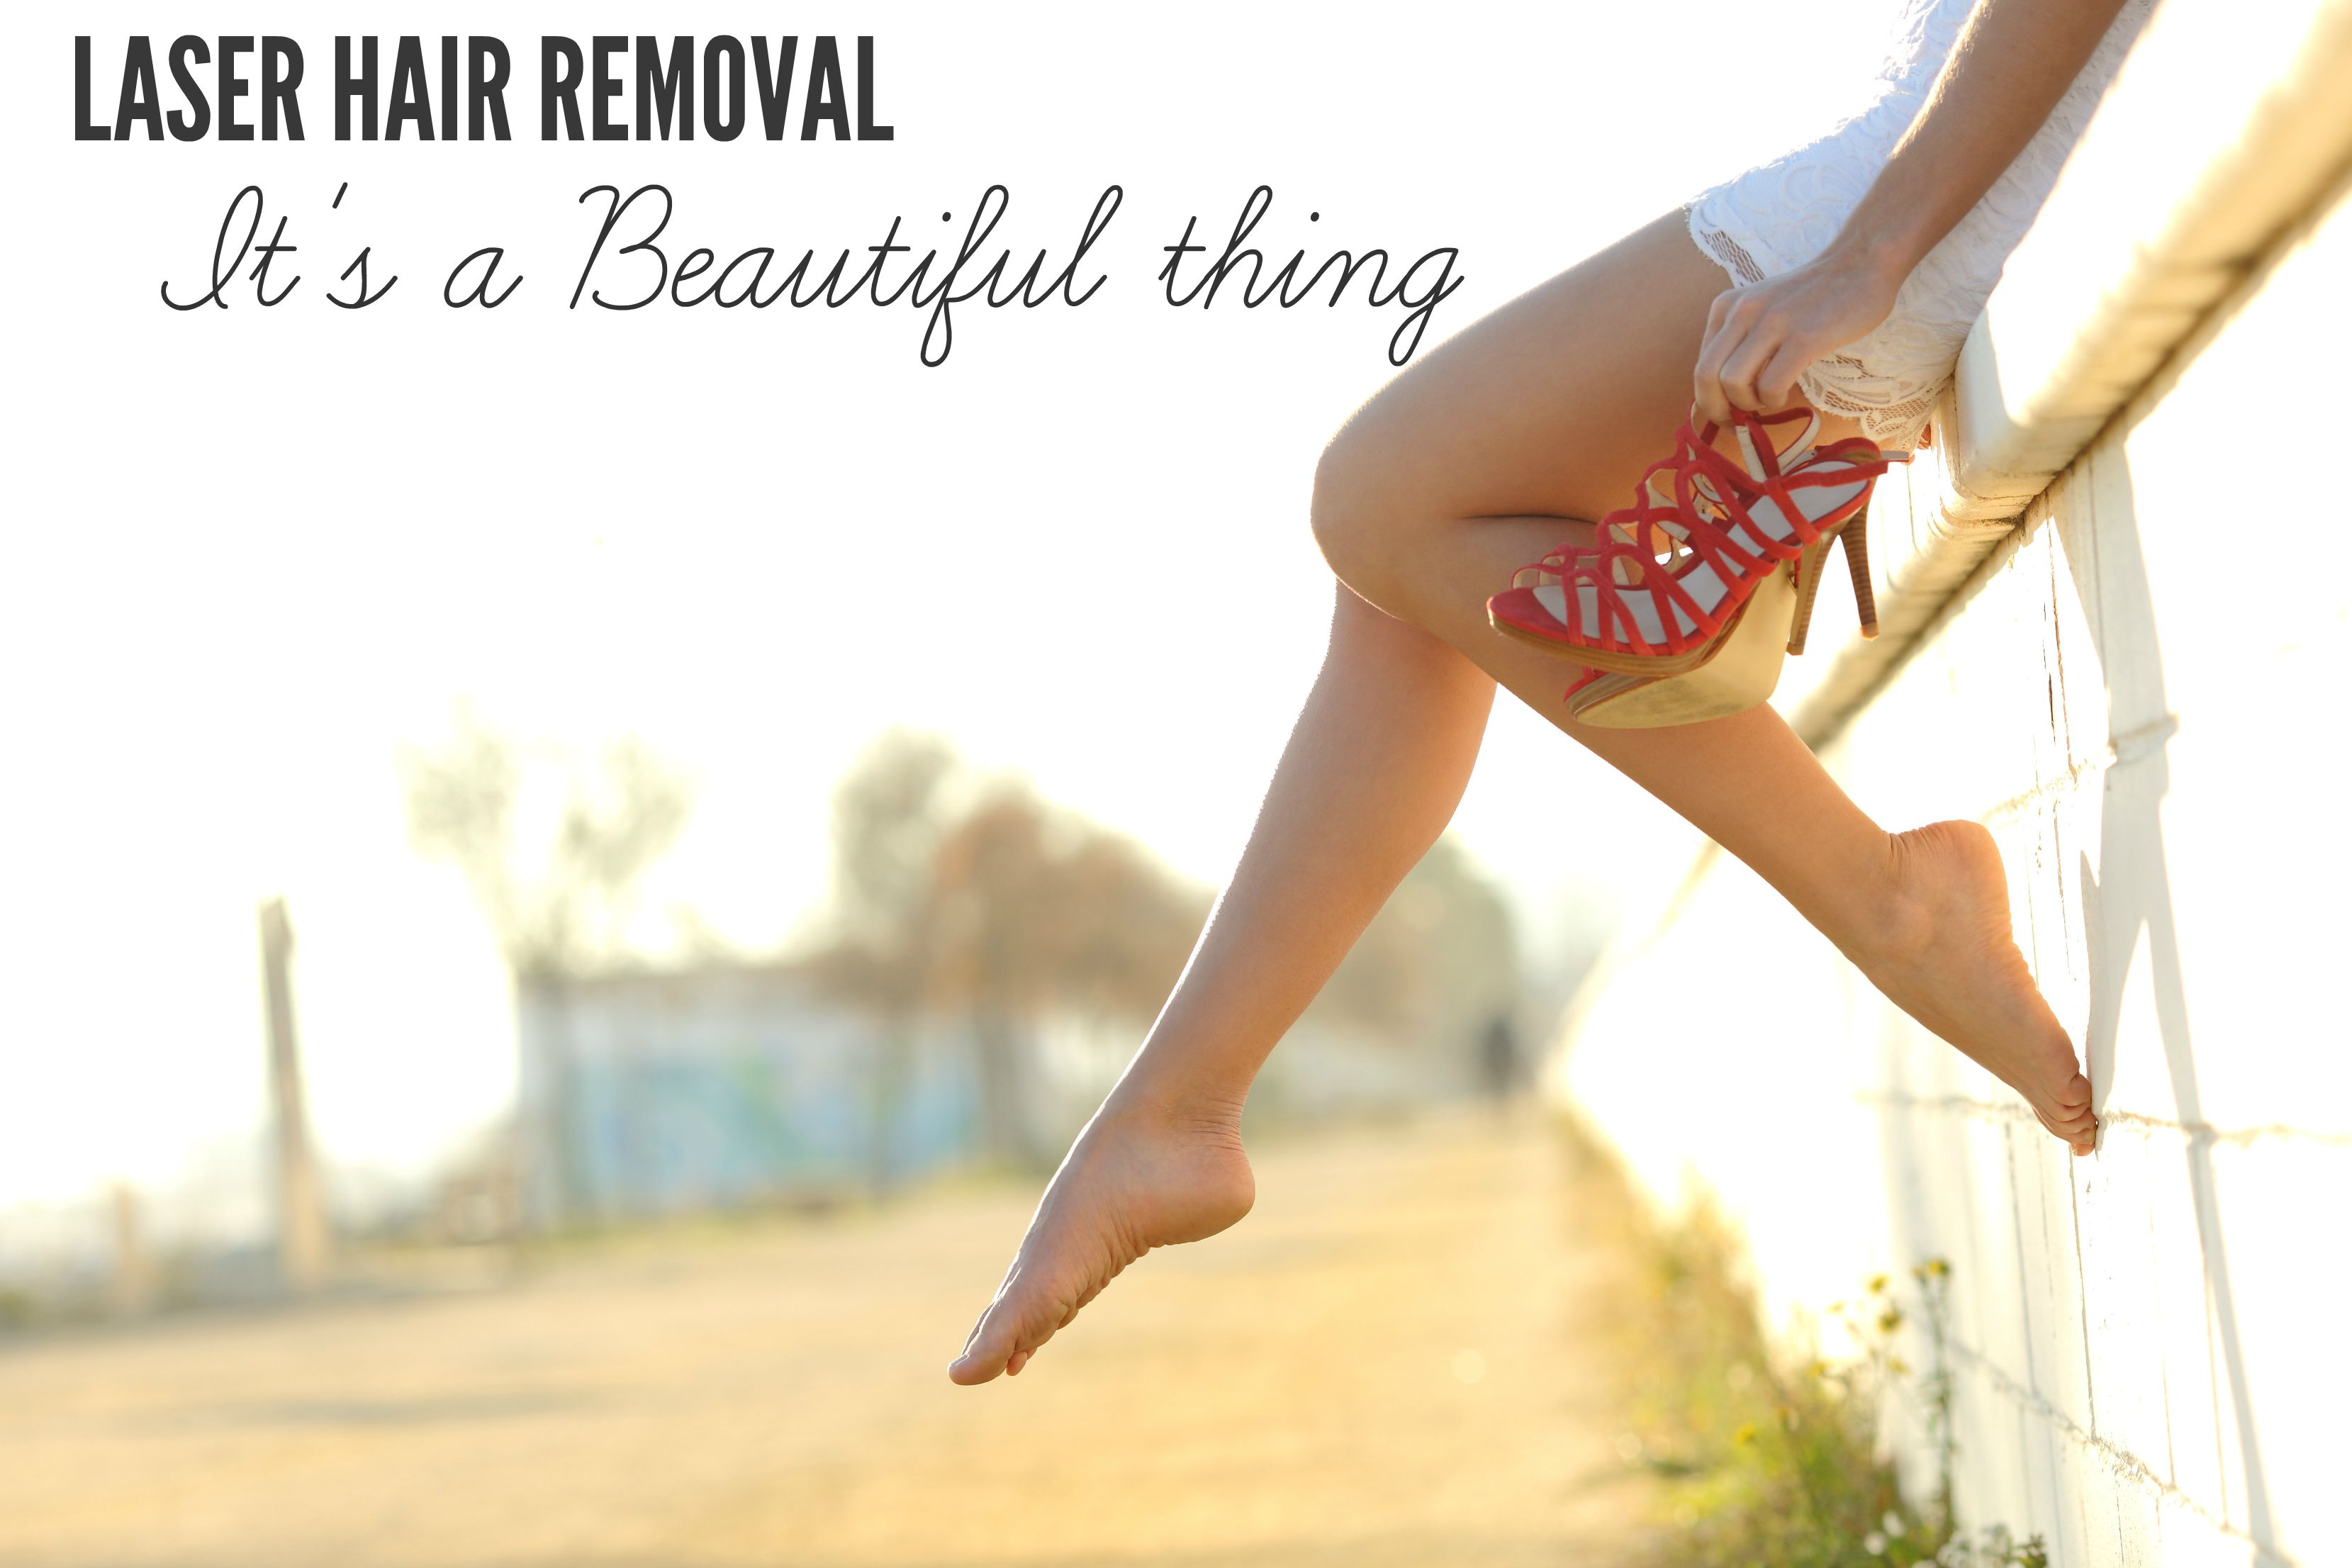 Laser Hair Removal: It's a Beautiful Thing